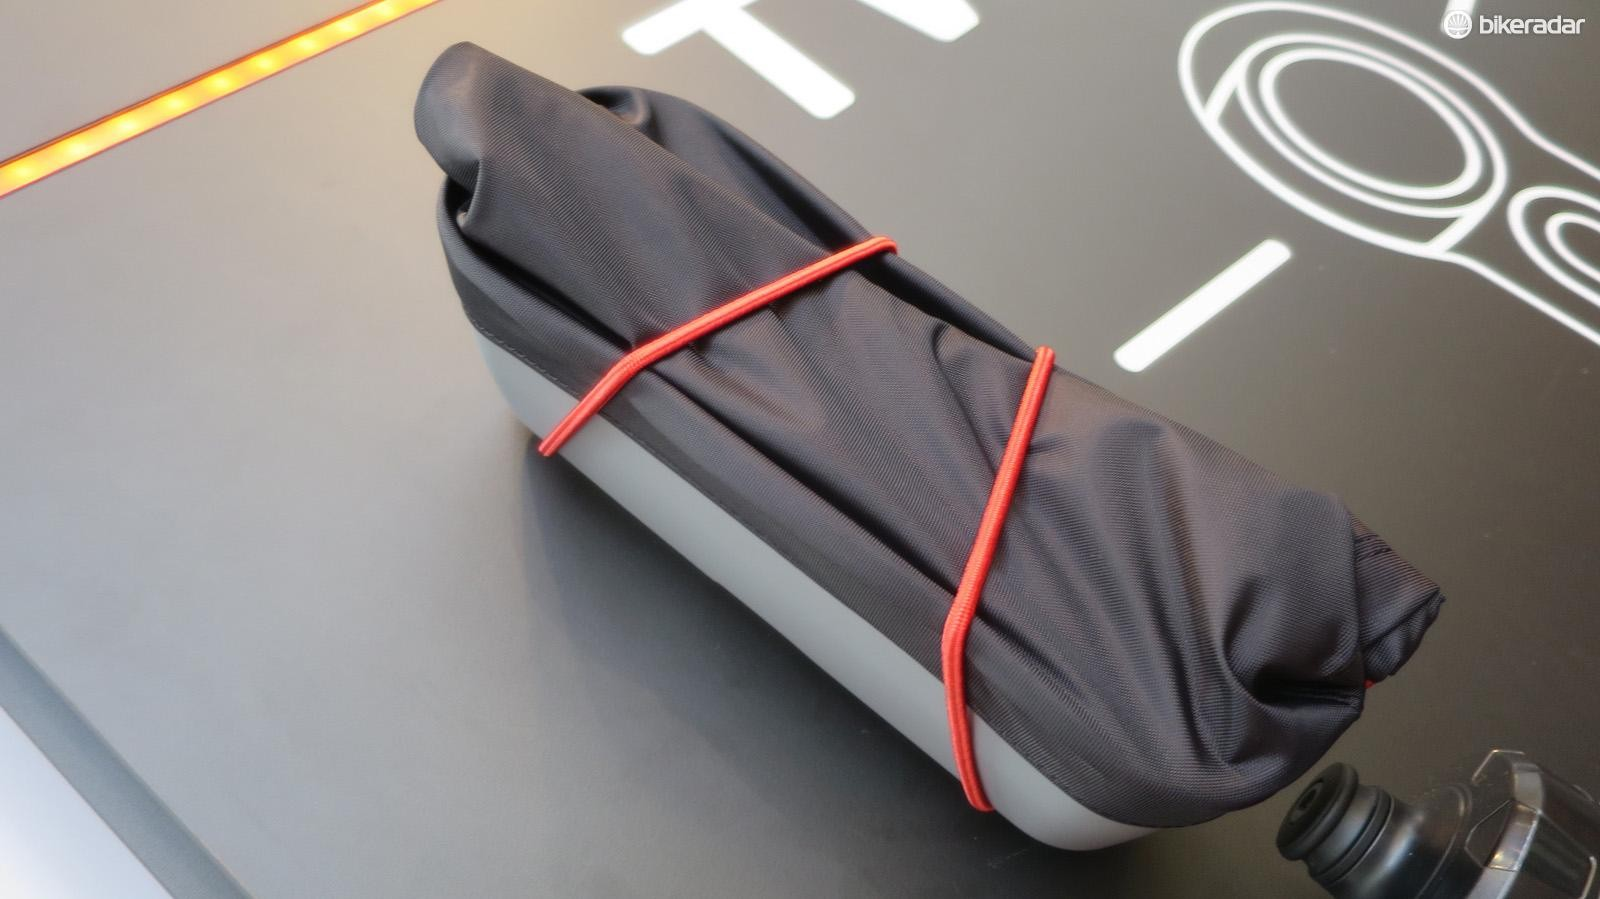 As well as this expandable frame bag, which is aimed at commuters and bike packers